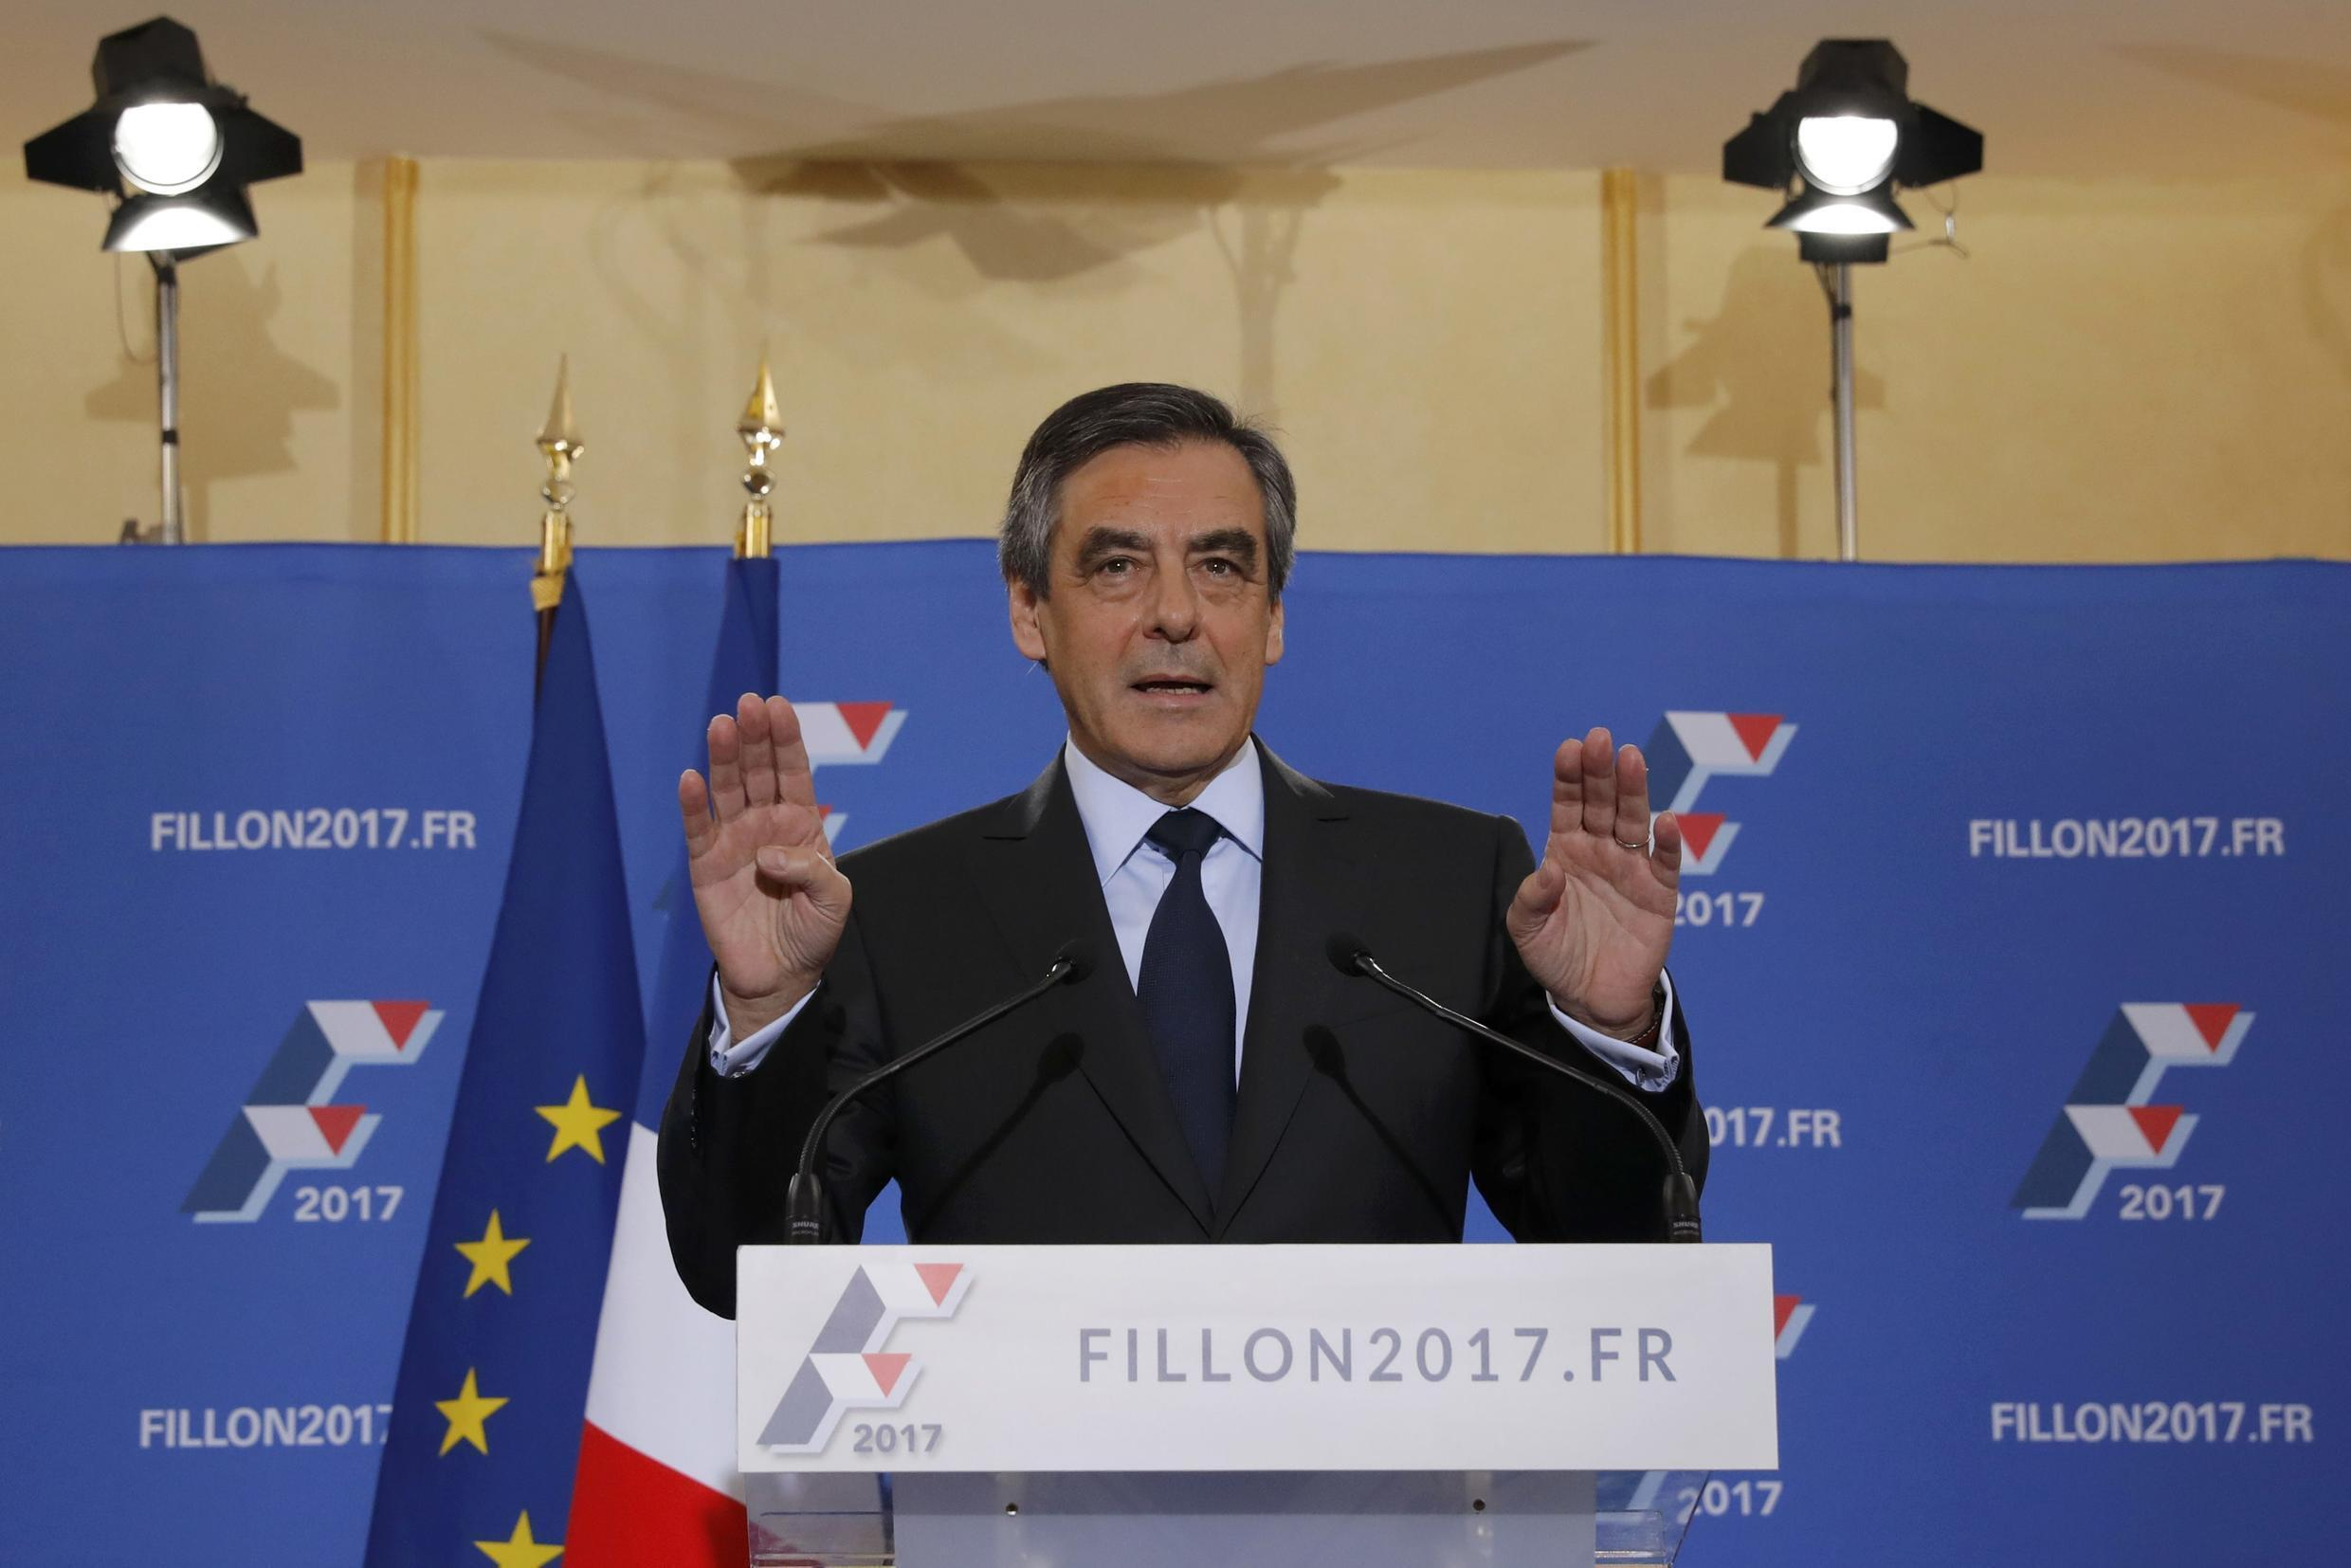 François Fillon delivers his speech after winning the French centre-right presidential primary election in Paris on Sunday.